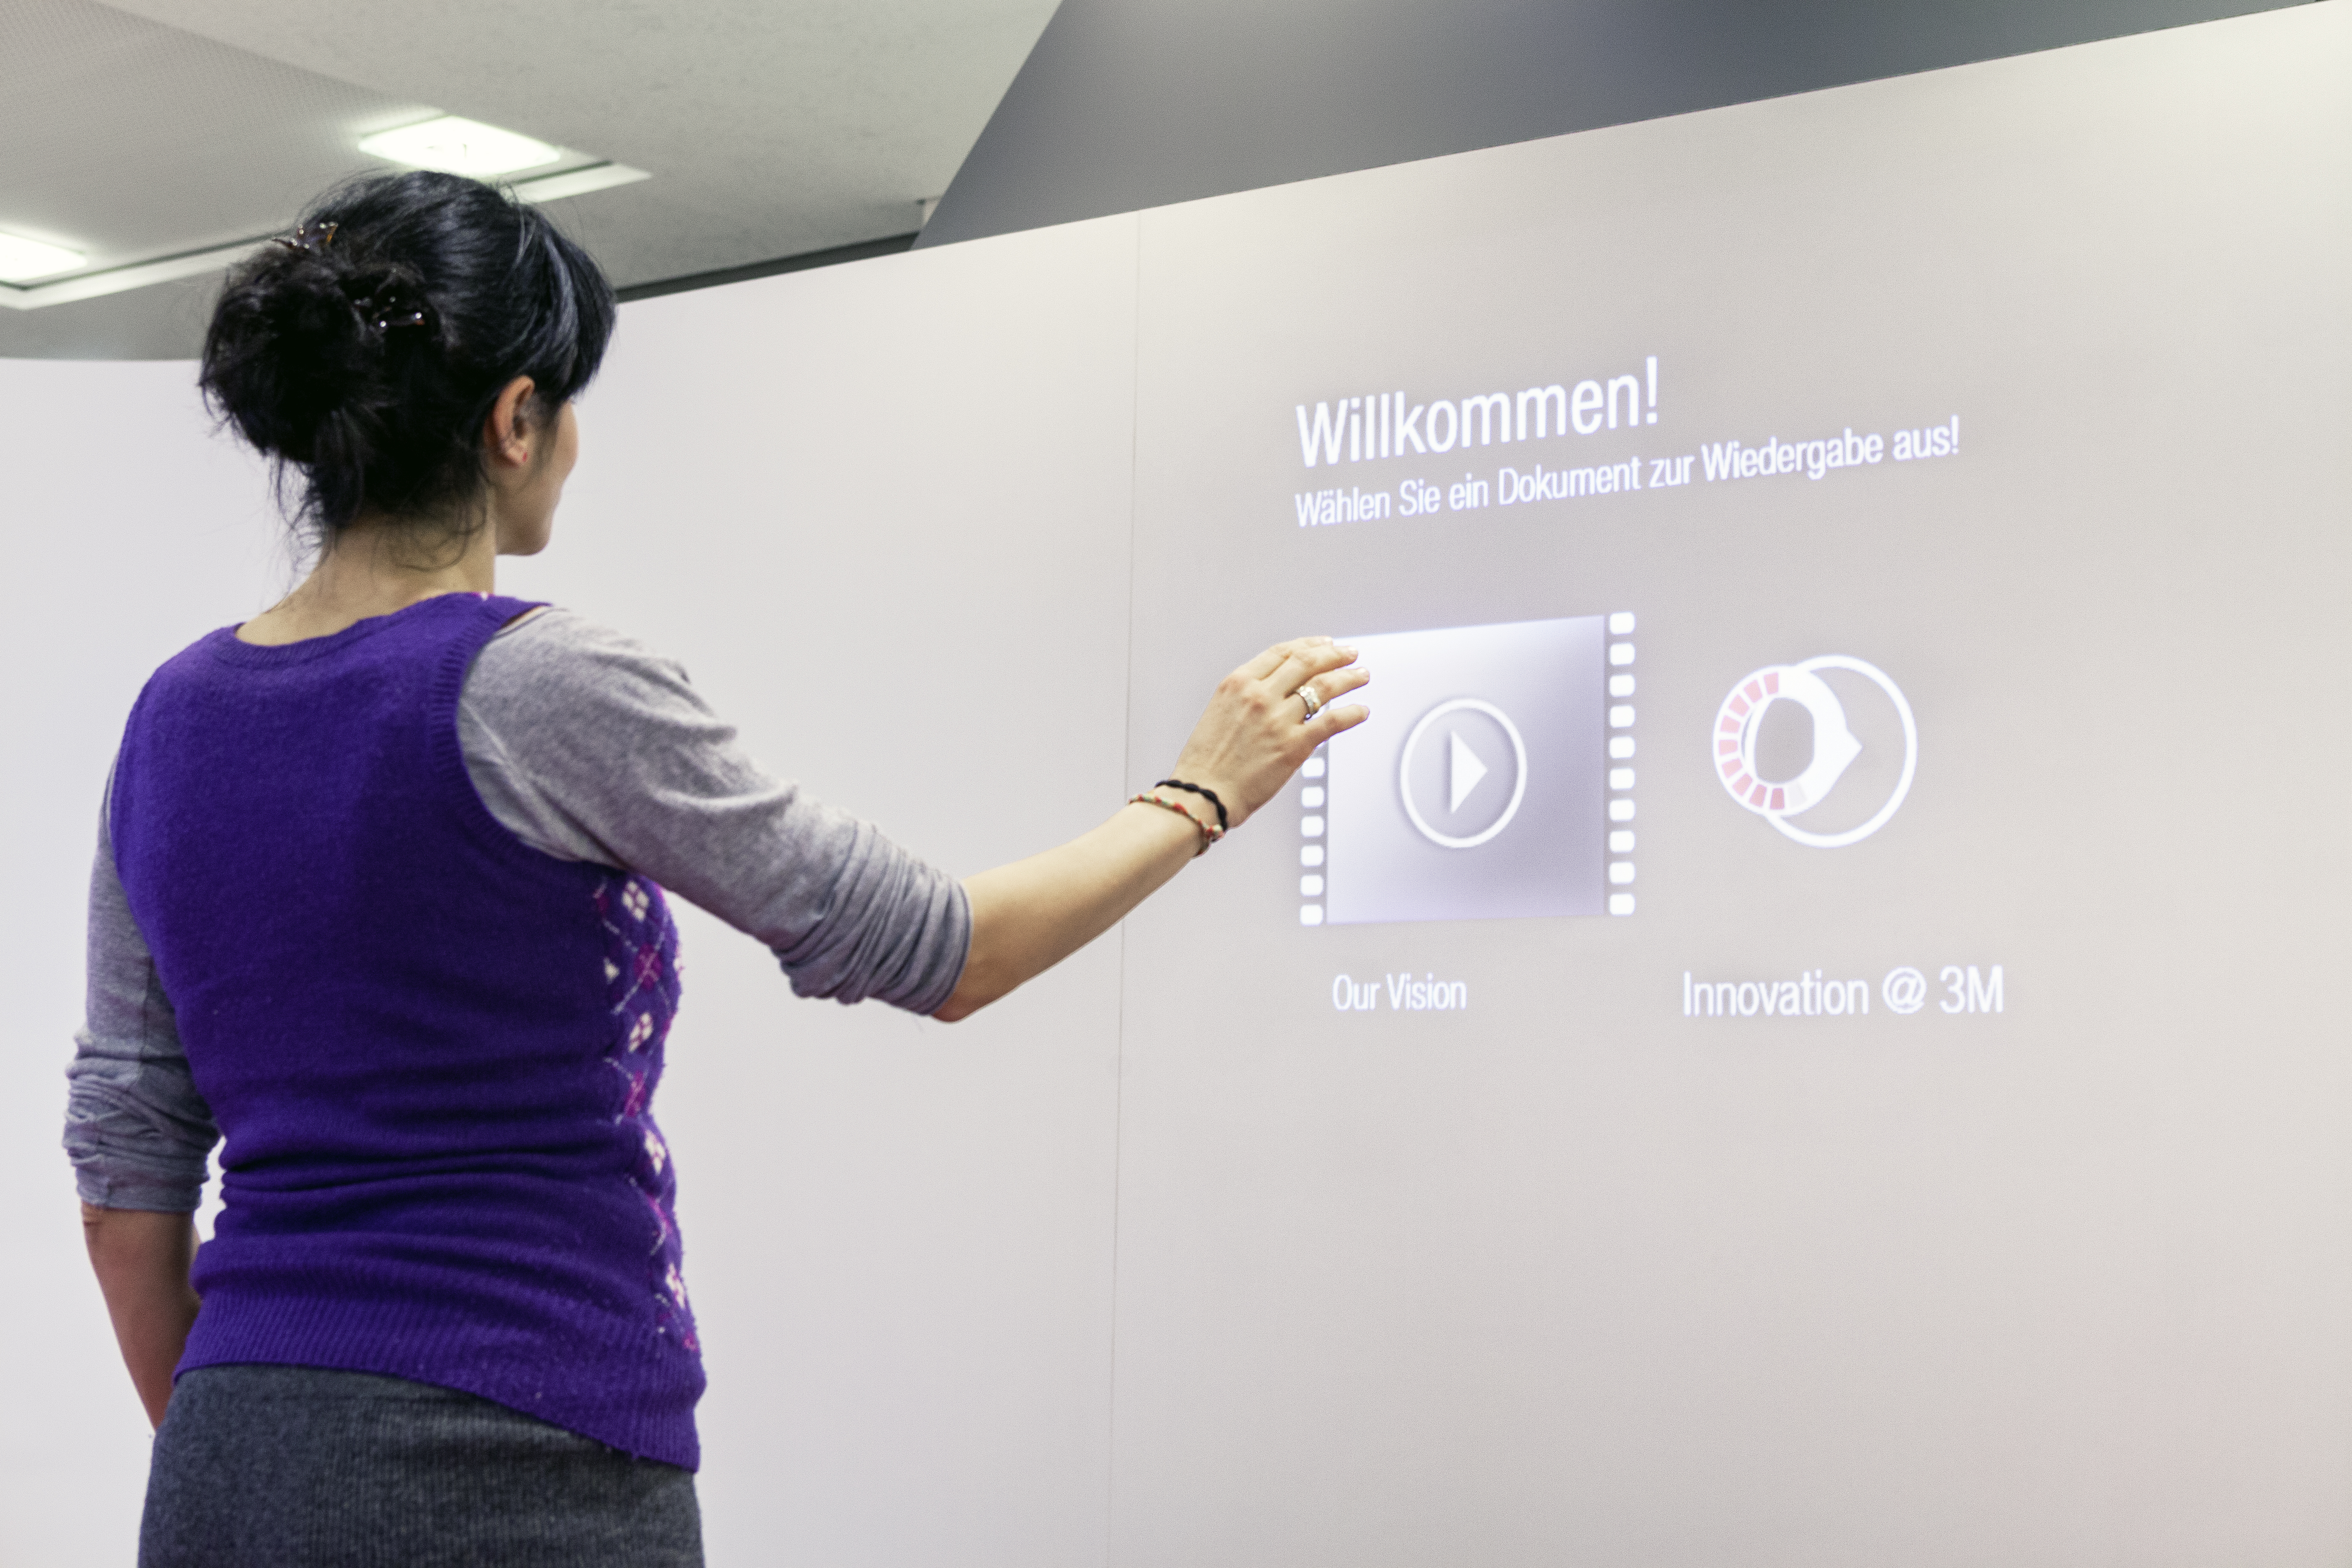 Photo 3M World of Innovation woman operates canvas via gesture control arm